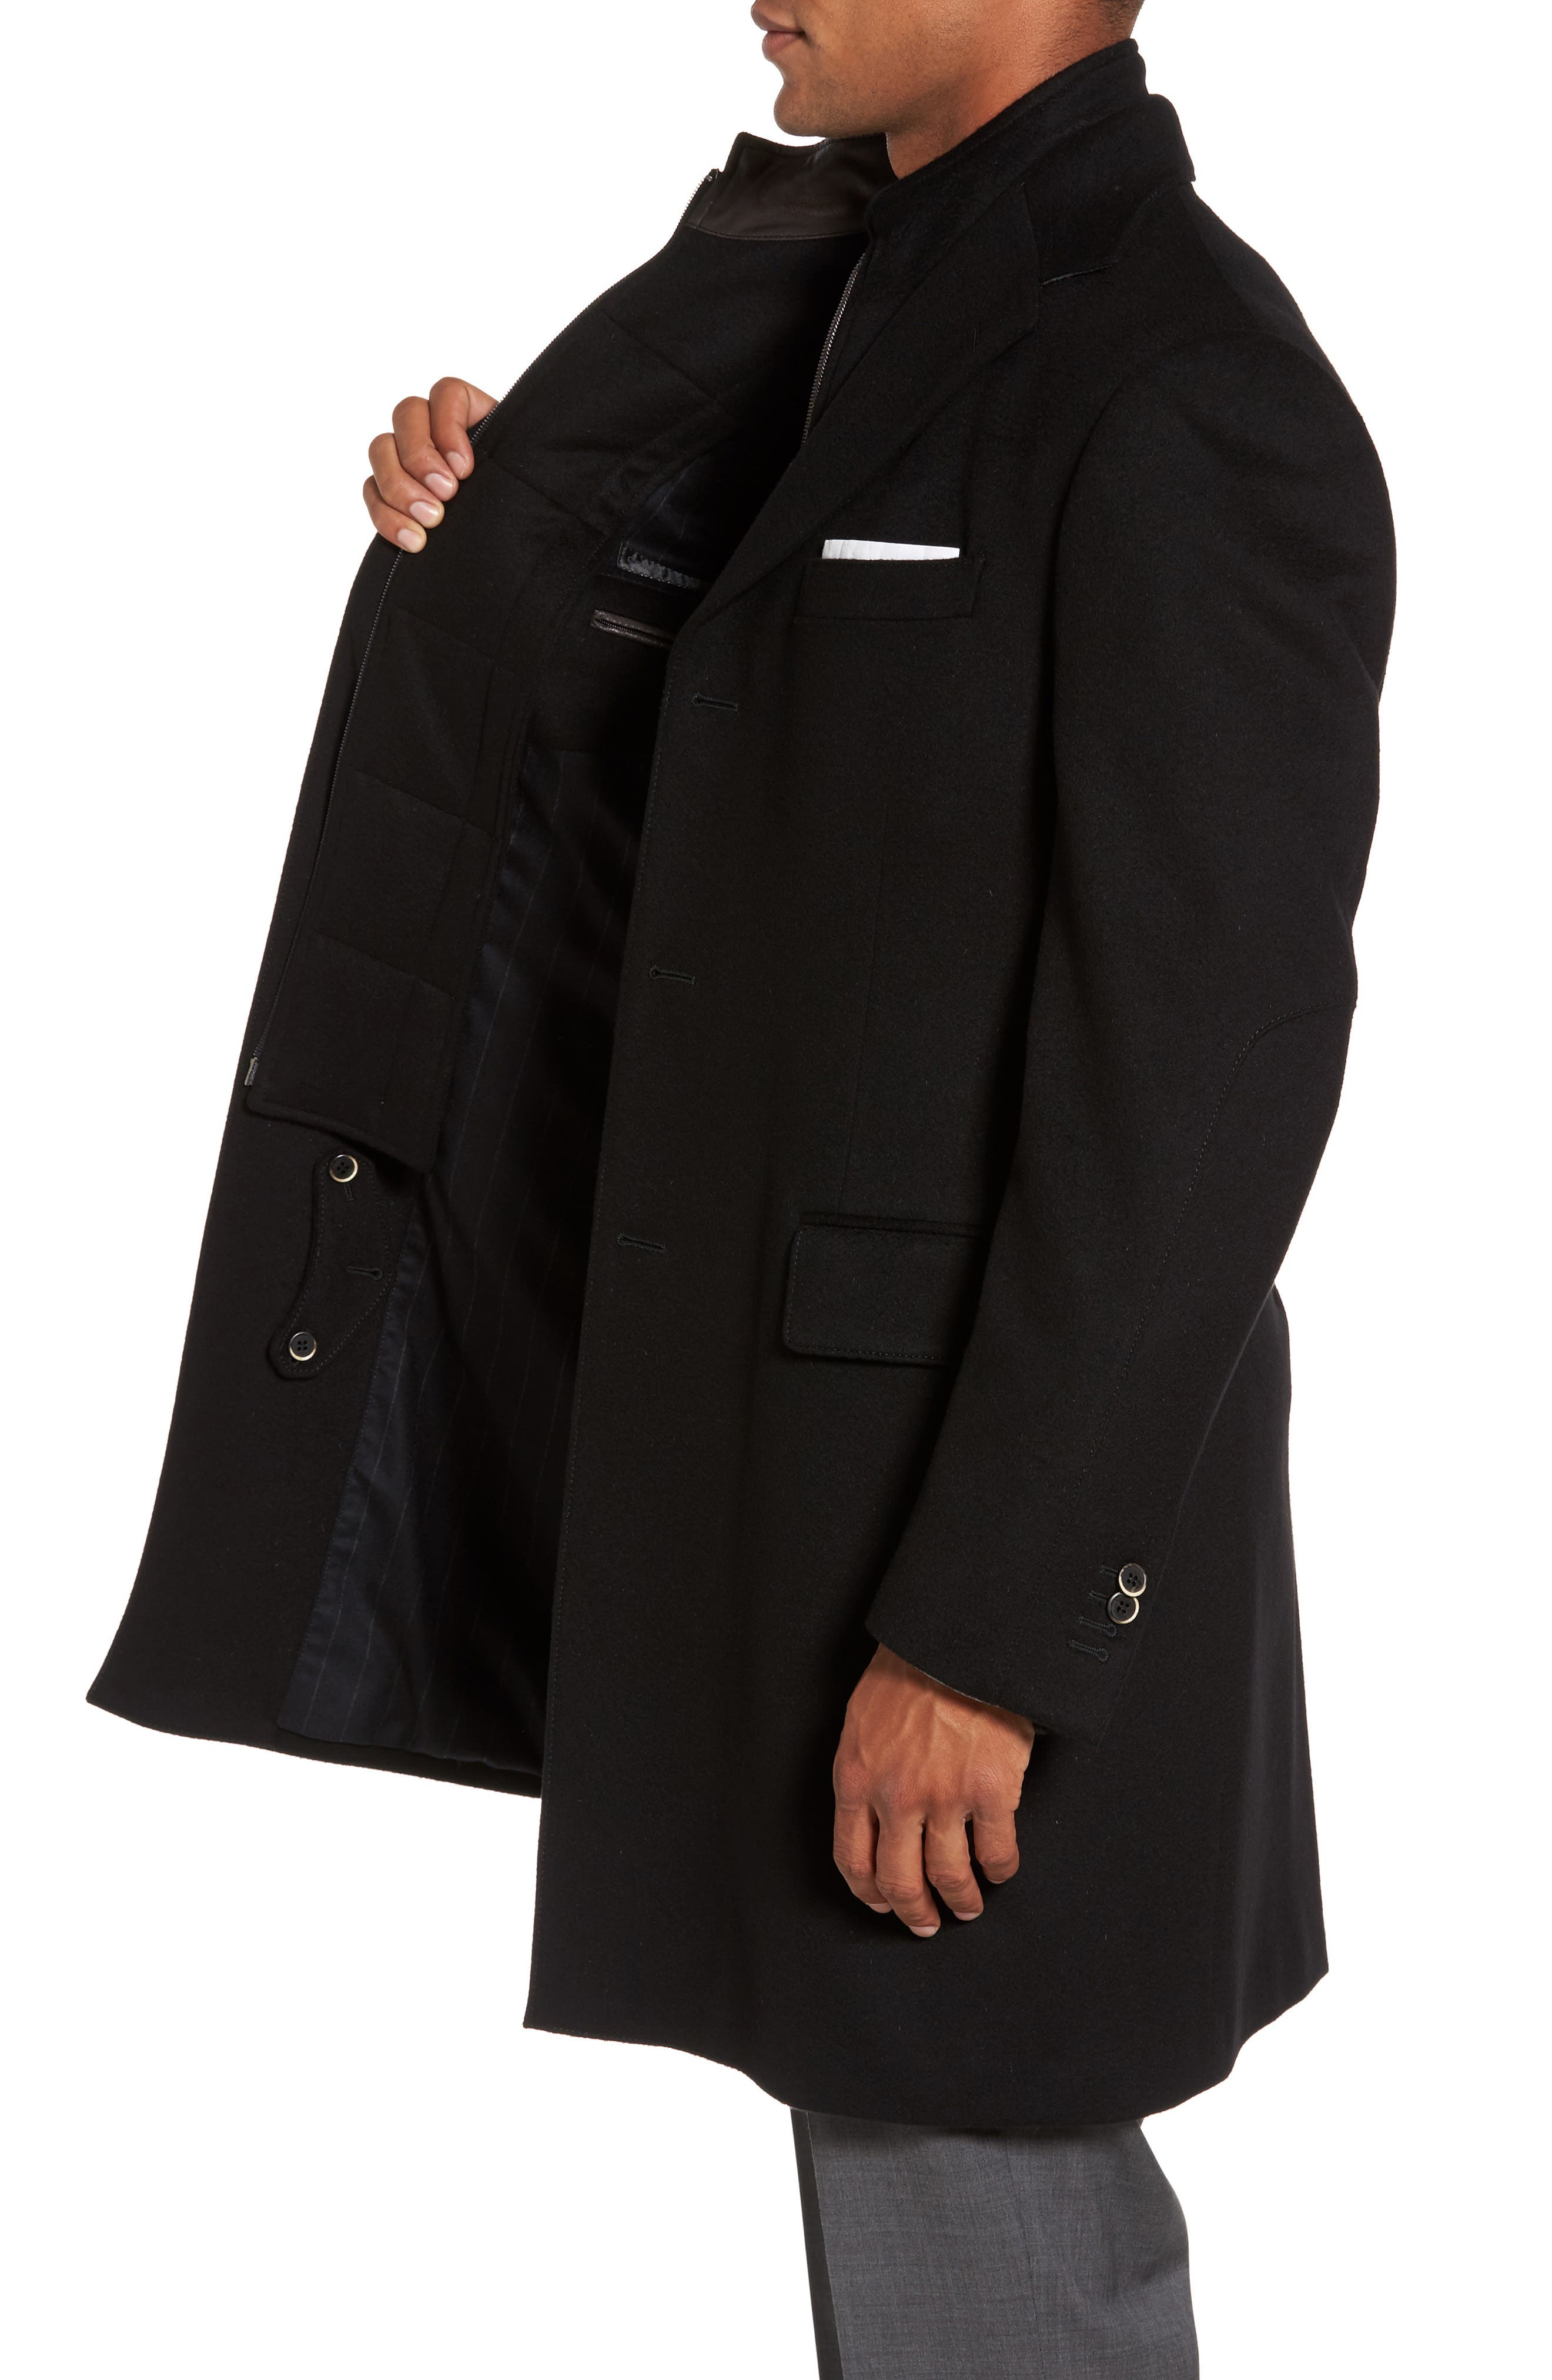 Classic Fit Wool Overcoat,                             Alternate thumbnail 3, color,